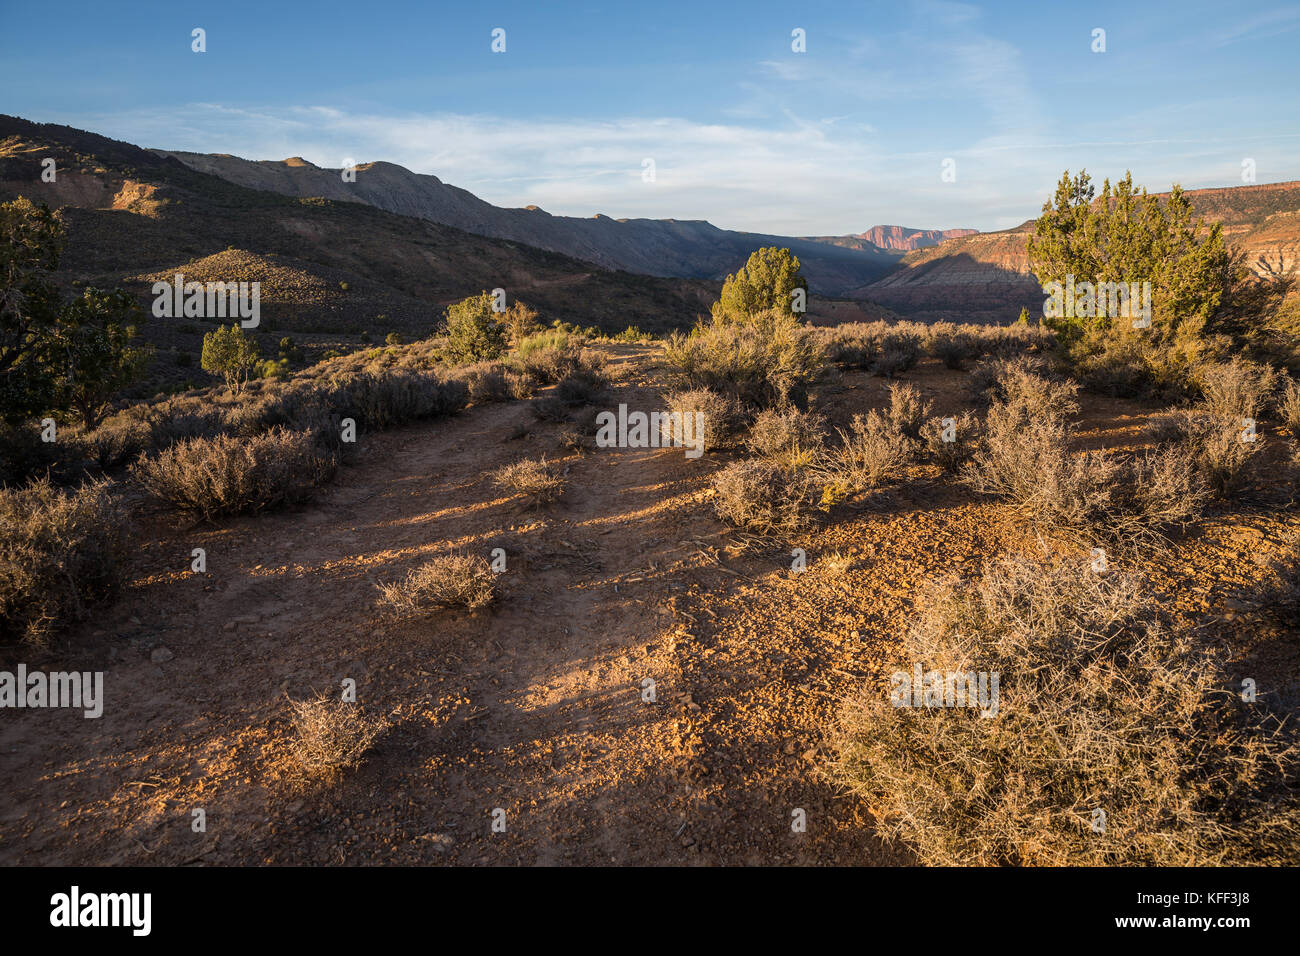 A narrow ATV trail cuts through sage and juniper trees in Southern Utah just before sunset. in the distance the Stock Photo